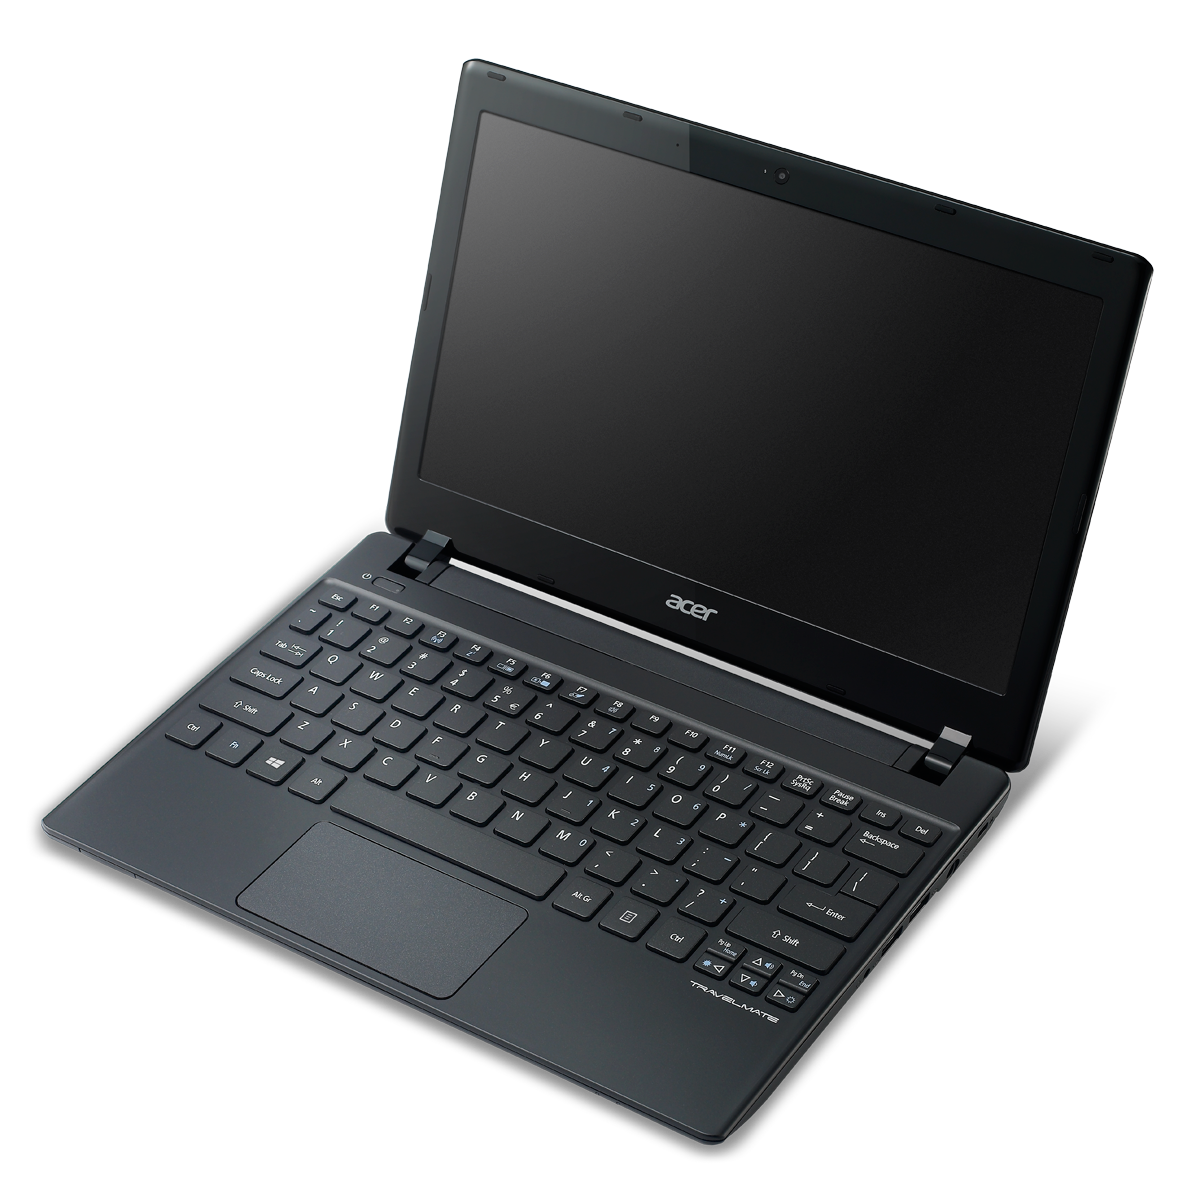 Laptop notebook PNG image image with transparent background 22